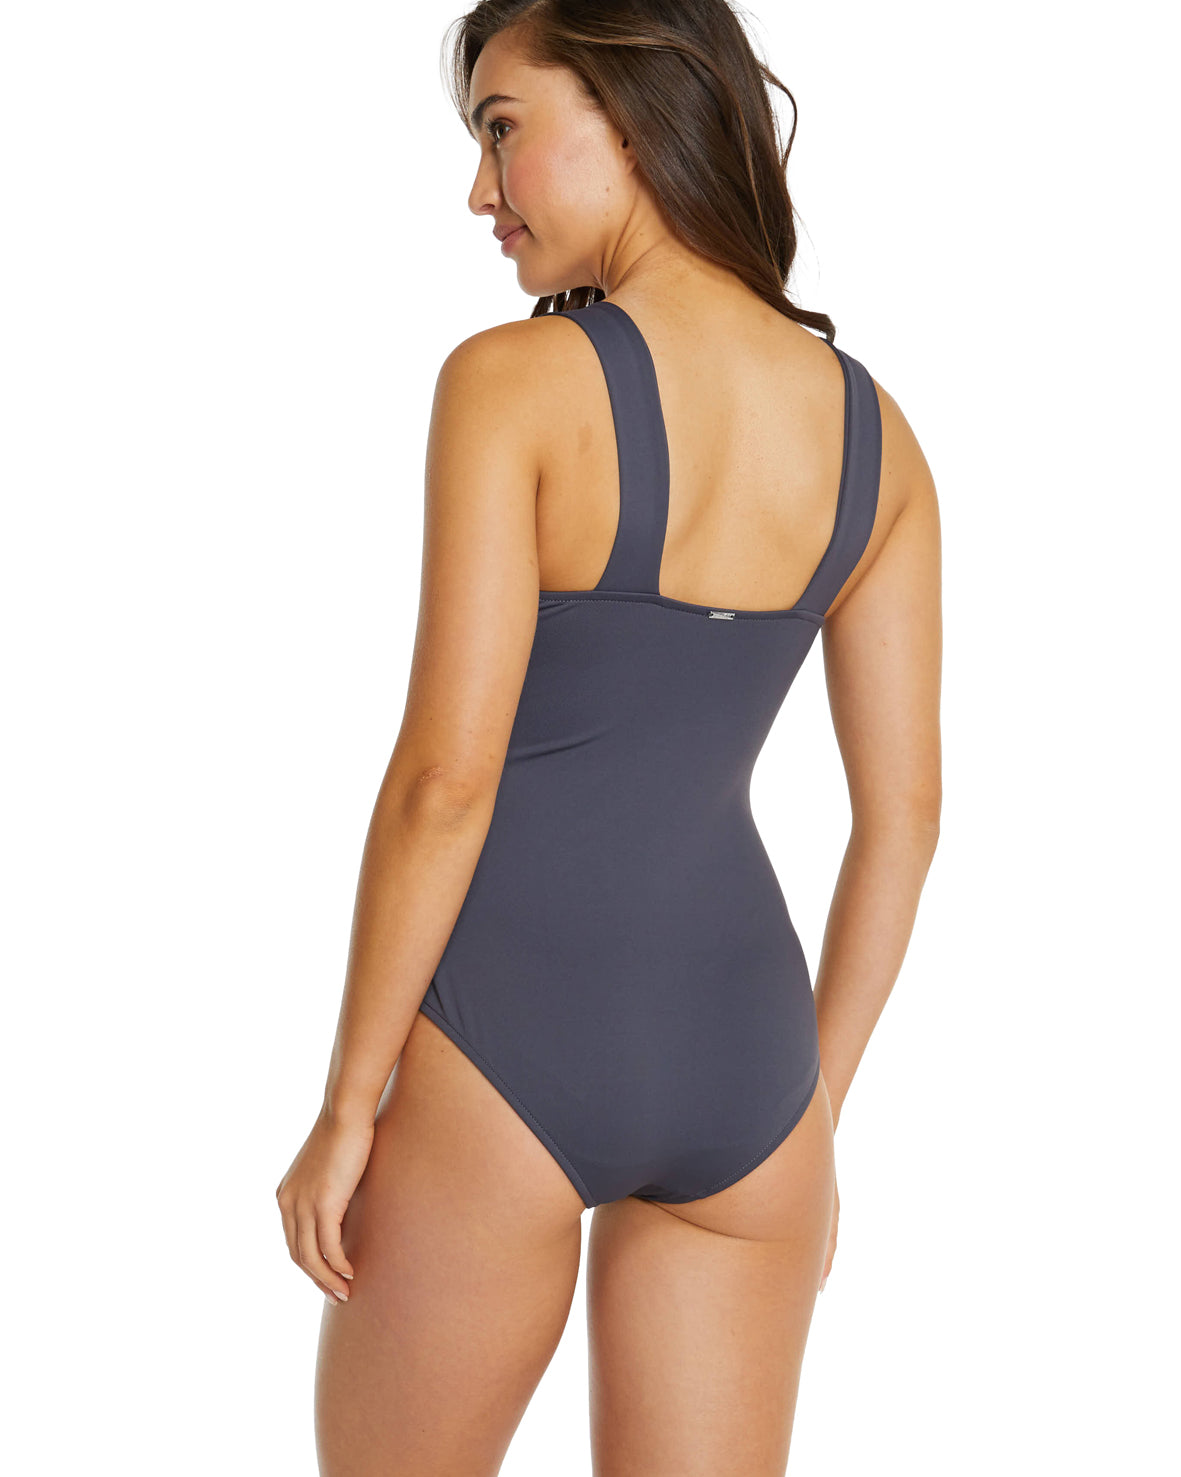 ECO ESSENTIALS WIDE STRAP ONE PIECE SWIMSUIT